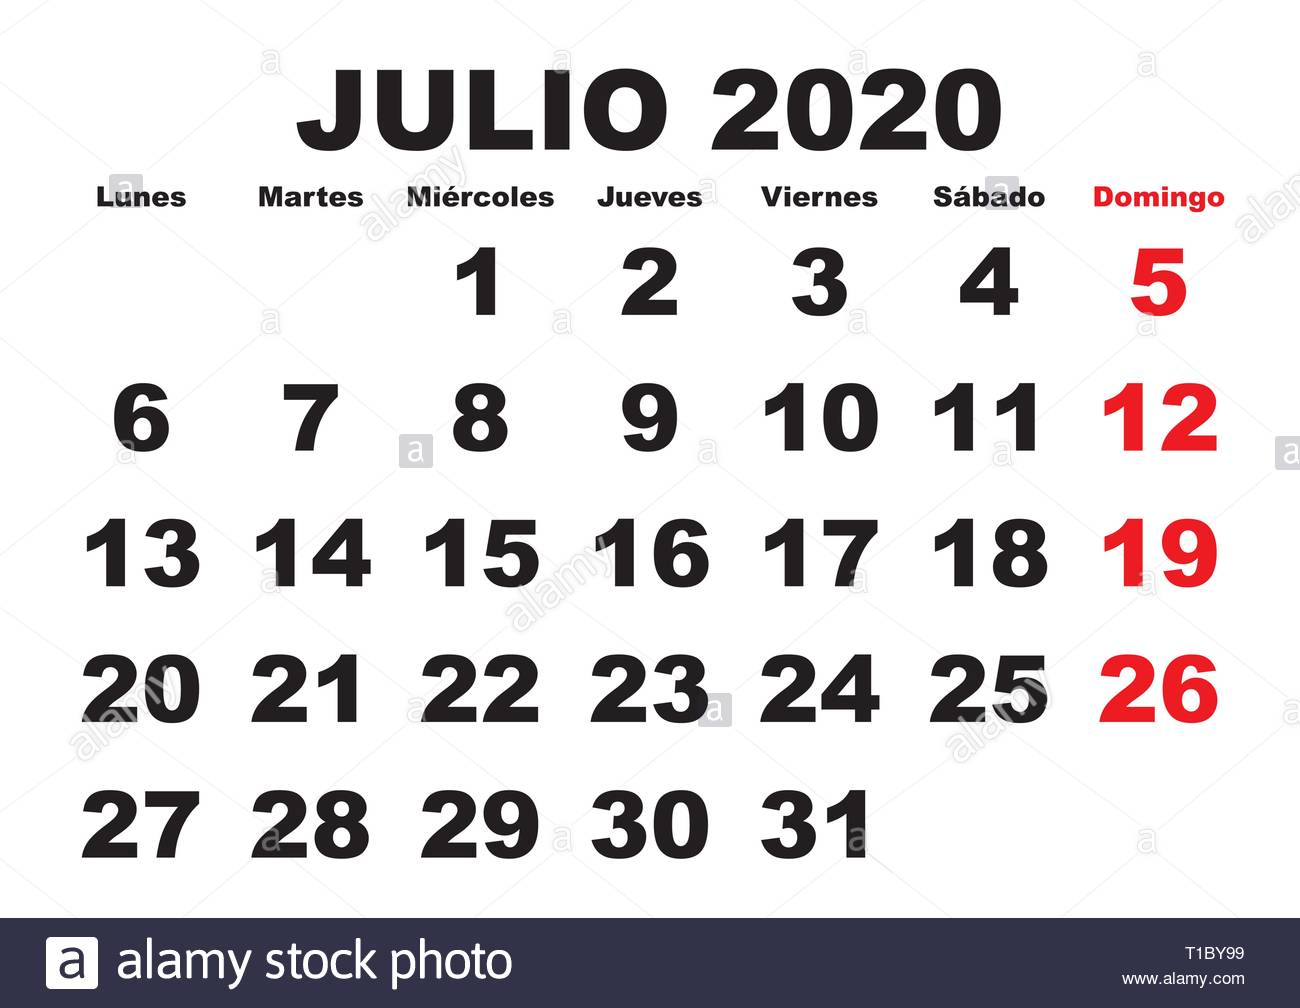 Layout Calendario 2020.July Month In A Year 2020 Wall Calendar In Spanish Julio